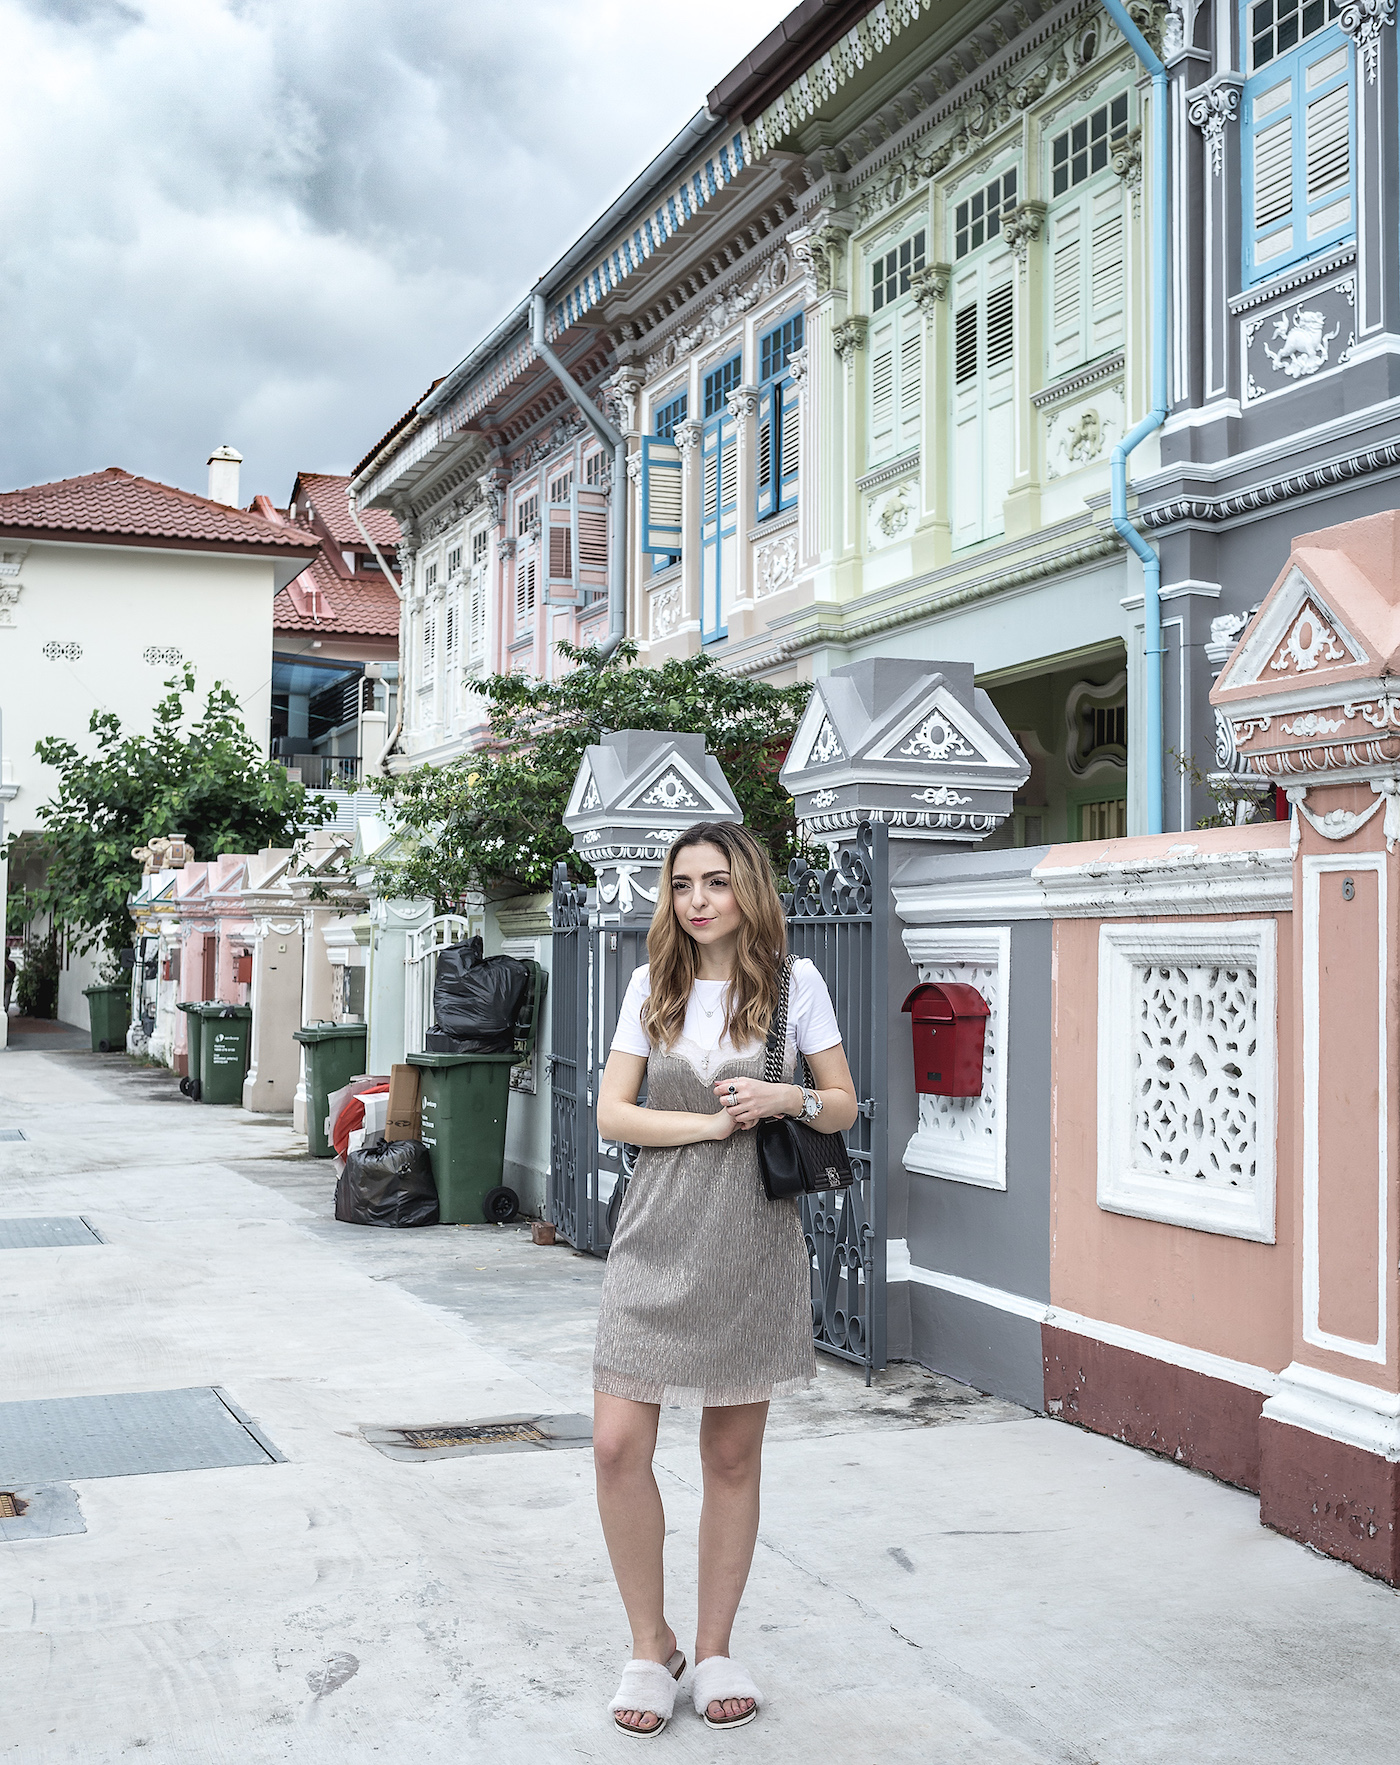 Want Get Repeat Singapore Travel Guide